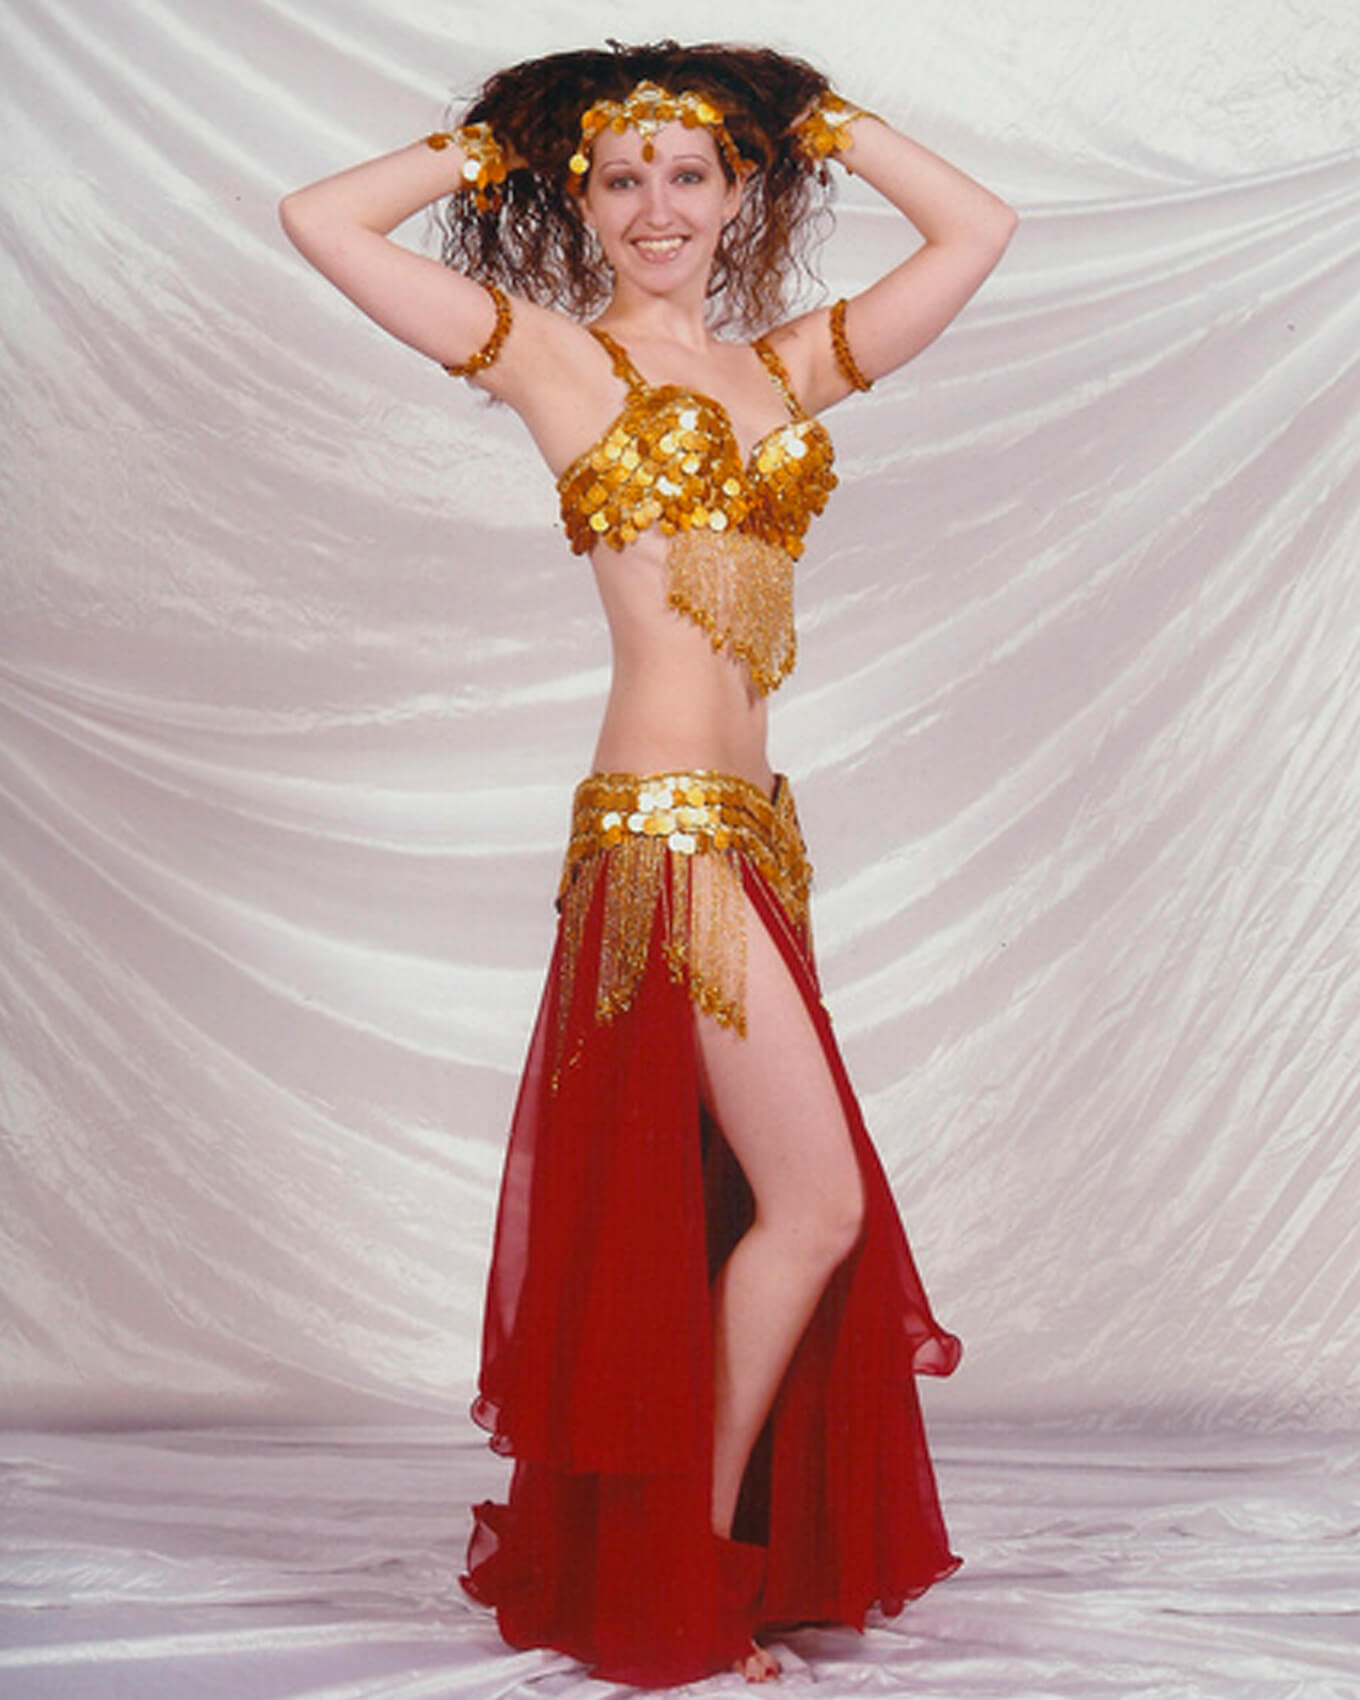 Donna wearing one of her red and gold belly dance outfits